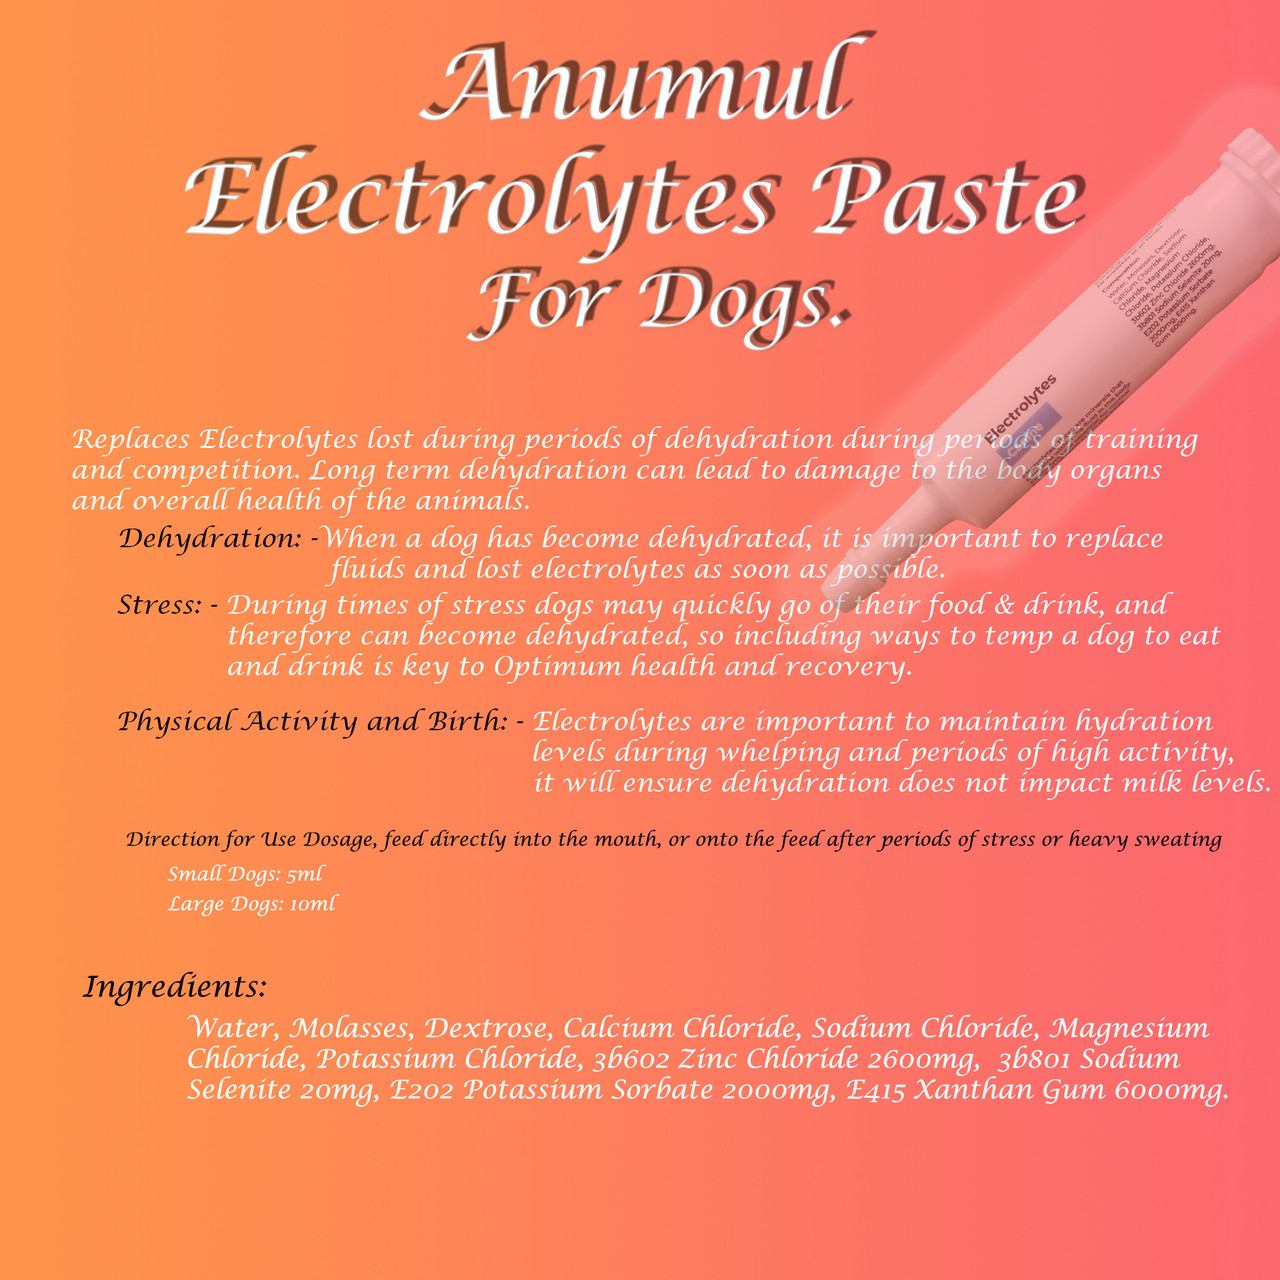 Anumul Electrolytes Paste Supports Normal Function of Cells for Dogs Poster